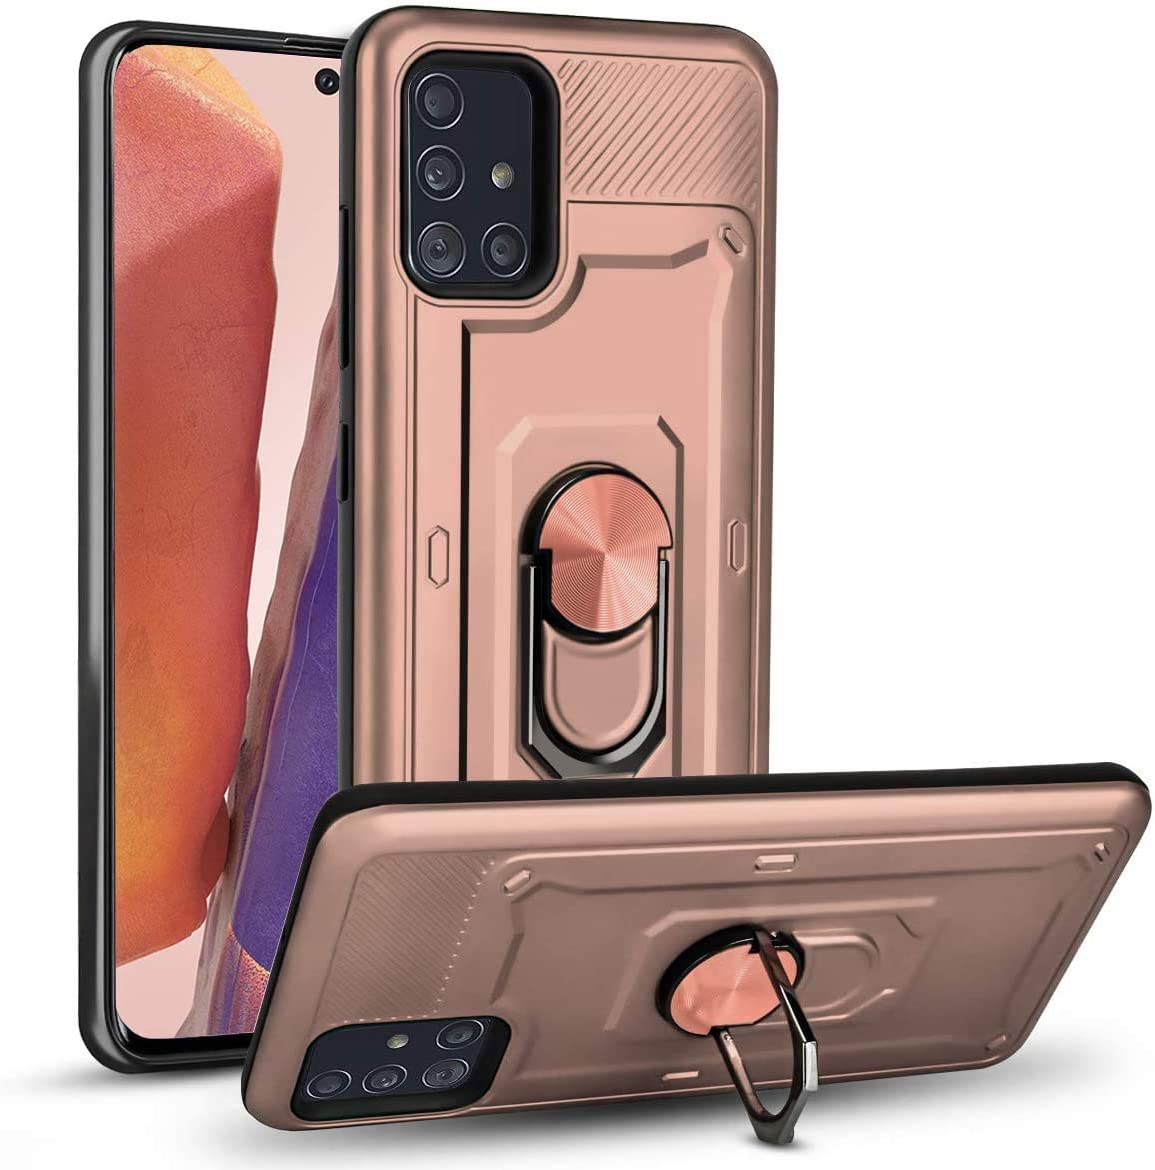 Nititop Compatible Samsung Galaxy A71 5G Case [NOT for Verizon A71 5G UW] with Built-in 360° Rotatable Ring Holder Kickstand Support Car Mount Shockproof Armor Dual Layer 2 in 1 for A71 5G -Rose Gold